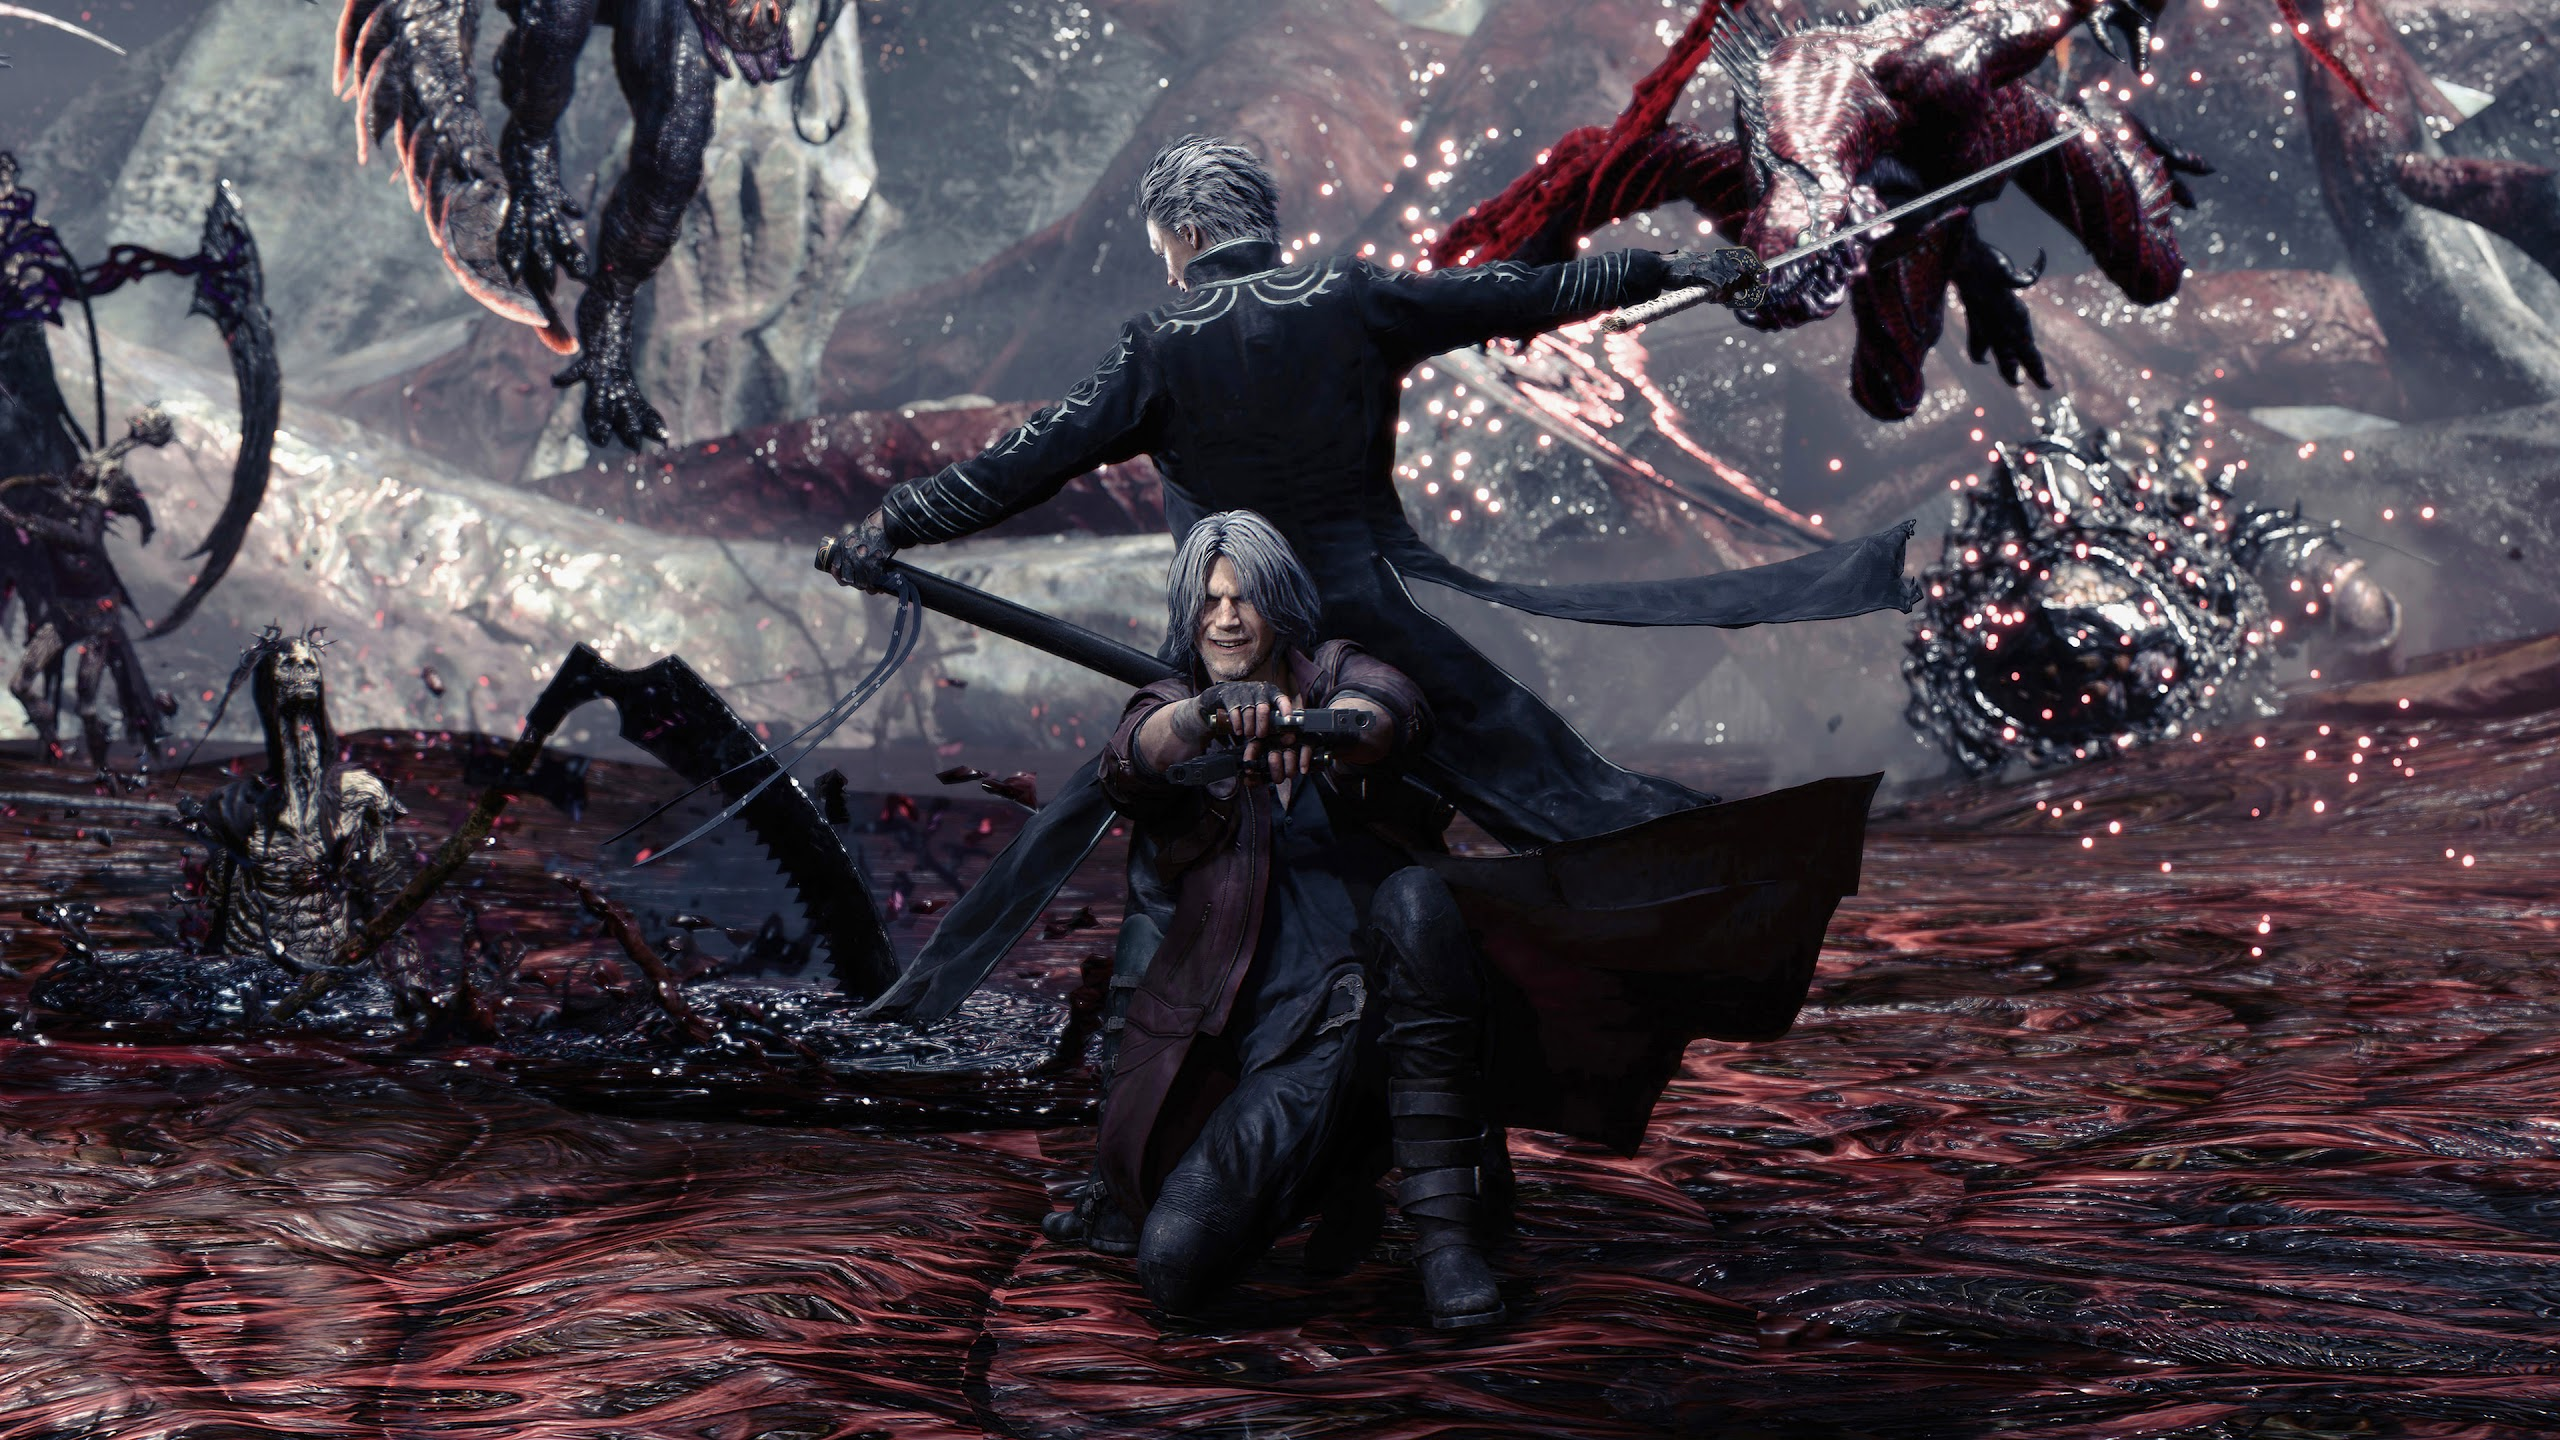 Devil May Cry 5 Dante And Vergil 4k Wallpaper 194